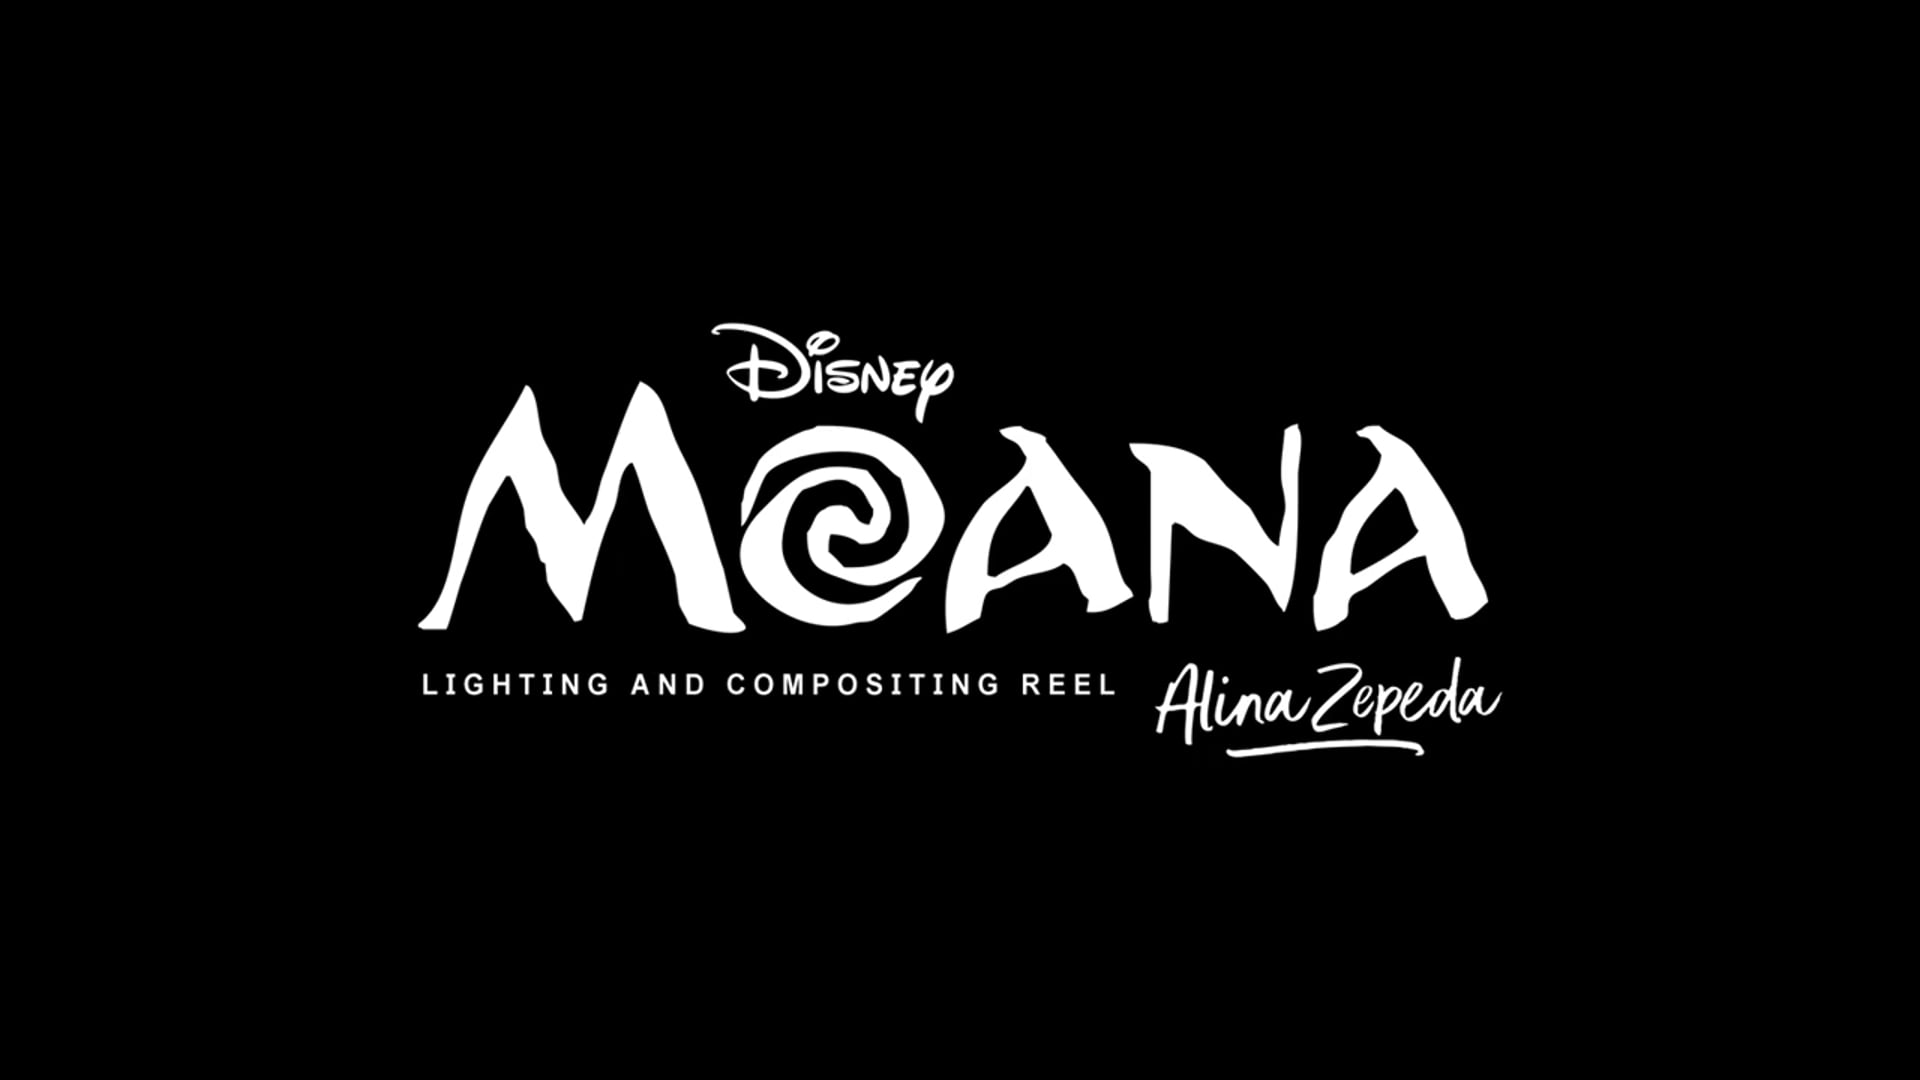 Moana Lighting and Compositing Reel